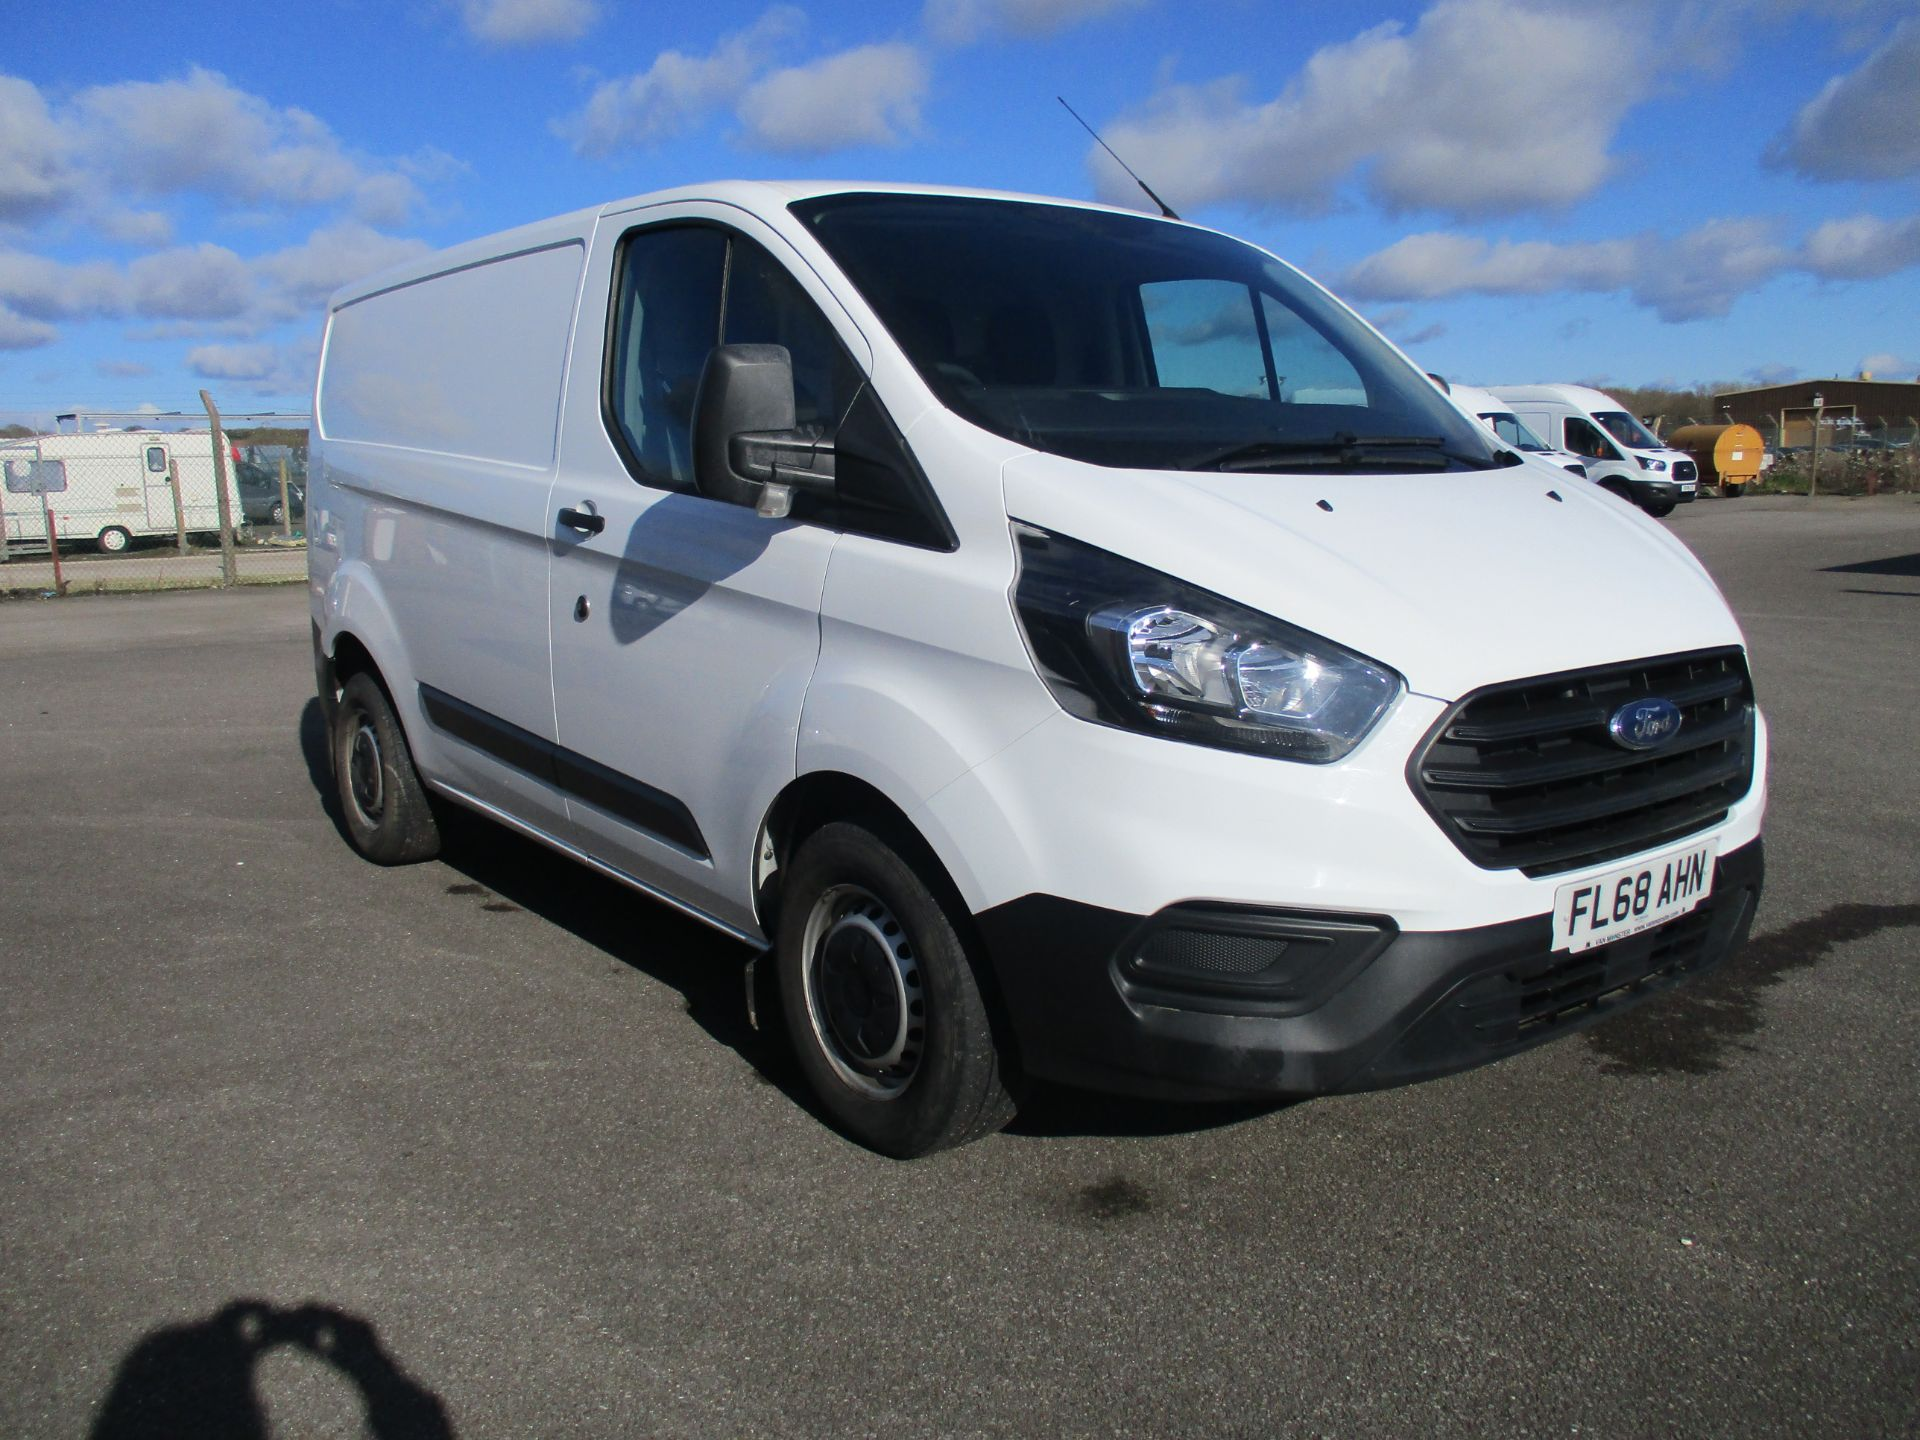 2018 Ford Transit Custom 300 L1 DIESEL FWD 2.0 TDCI 105PS LOW ROOF VAN EURO 6 (FL68AHN)